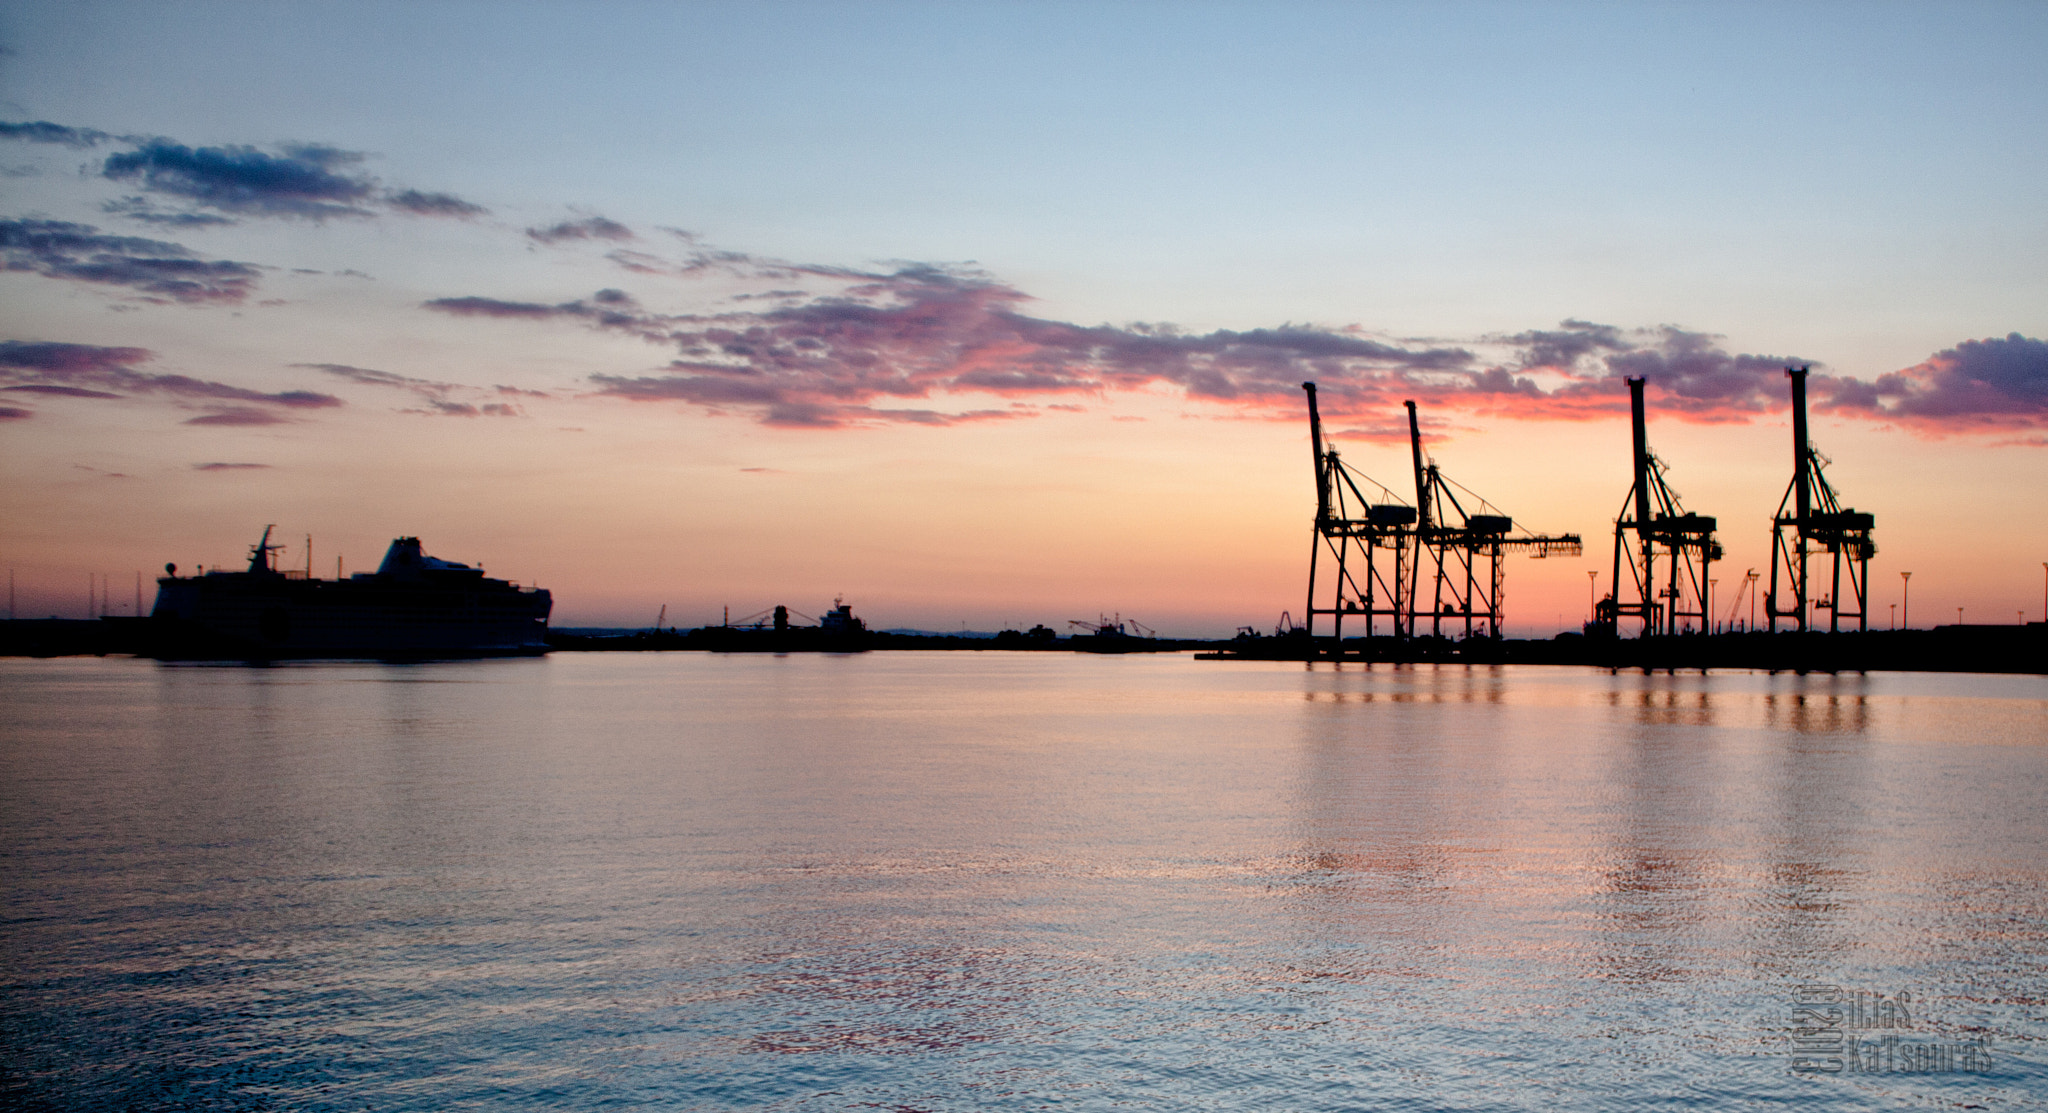 Photograph Dusk in the port by Ilias Katsouras on 500px